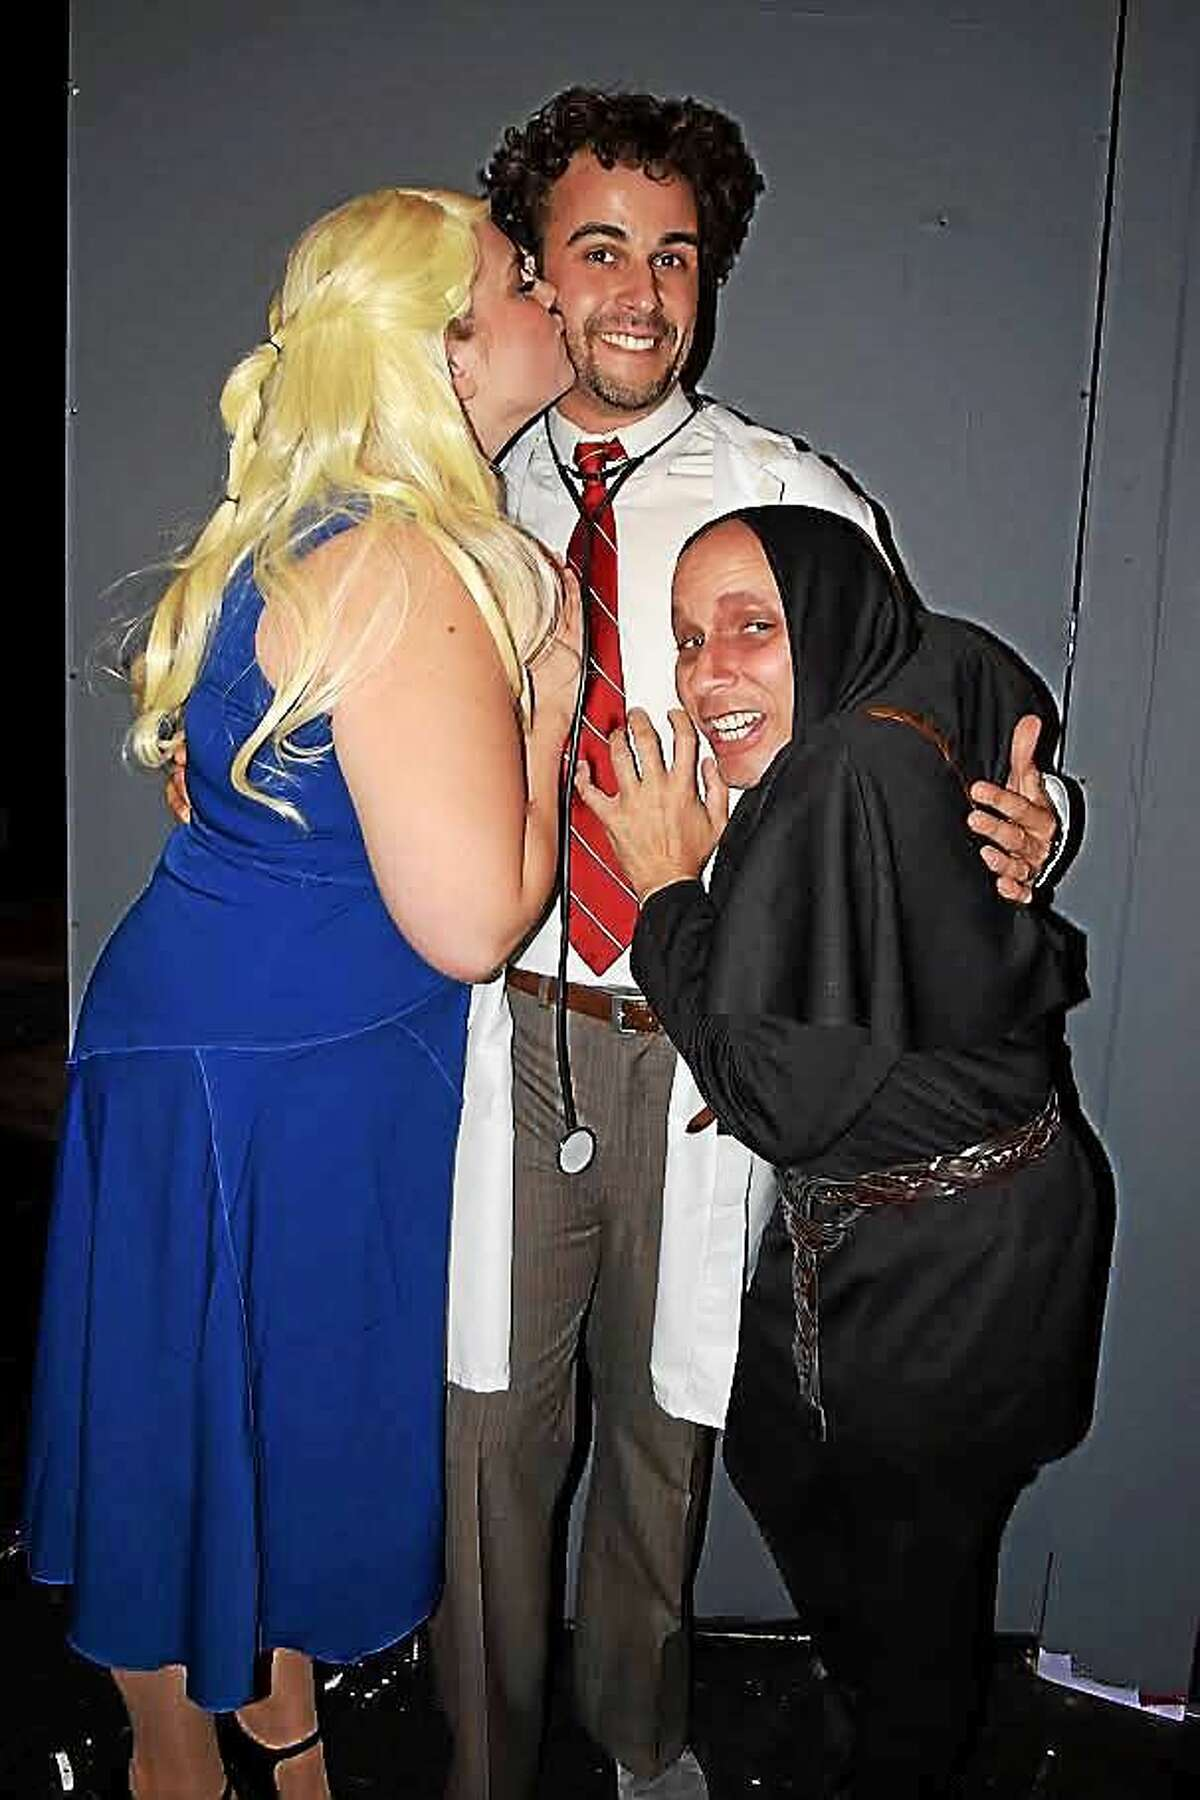 Contributed photo Johanna Regan (Inga), Tullio Milani (Dr. Frederick Frankenstein) and David Nunner (Igor) appear in Young Frankenstein at the Connecticut Theatre Company Oct. 2-18.